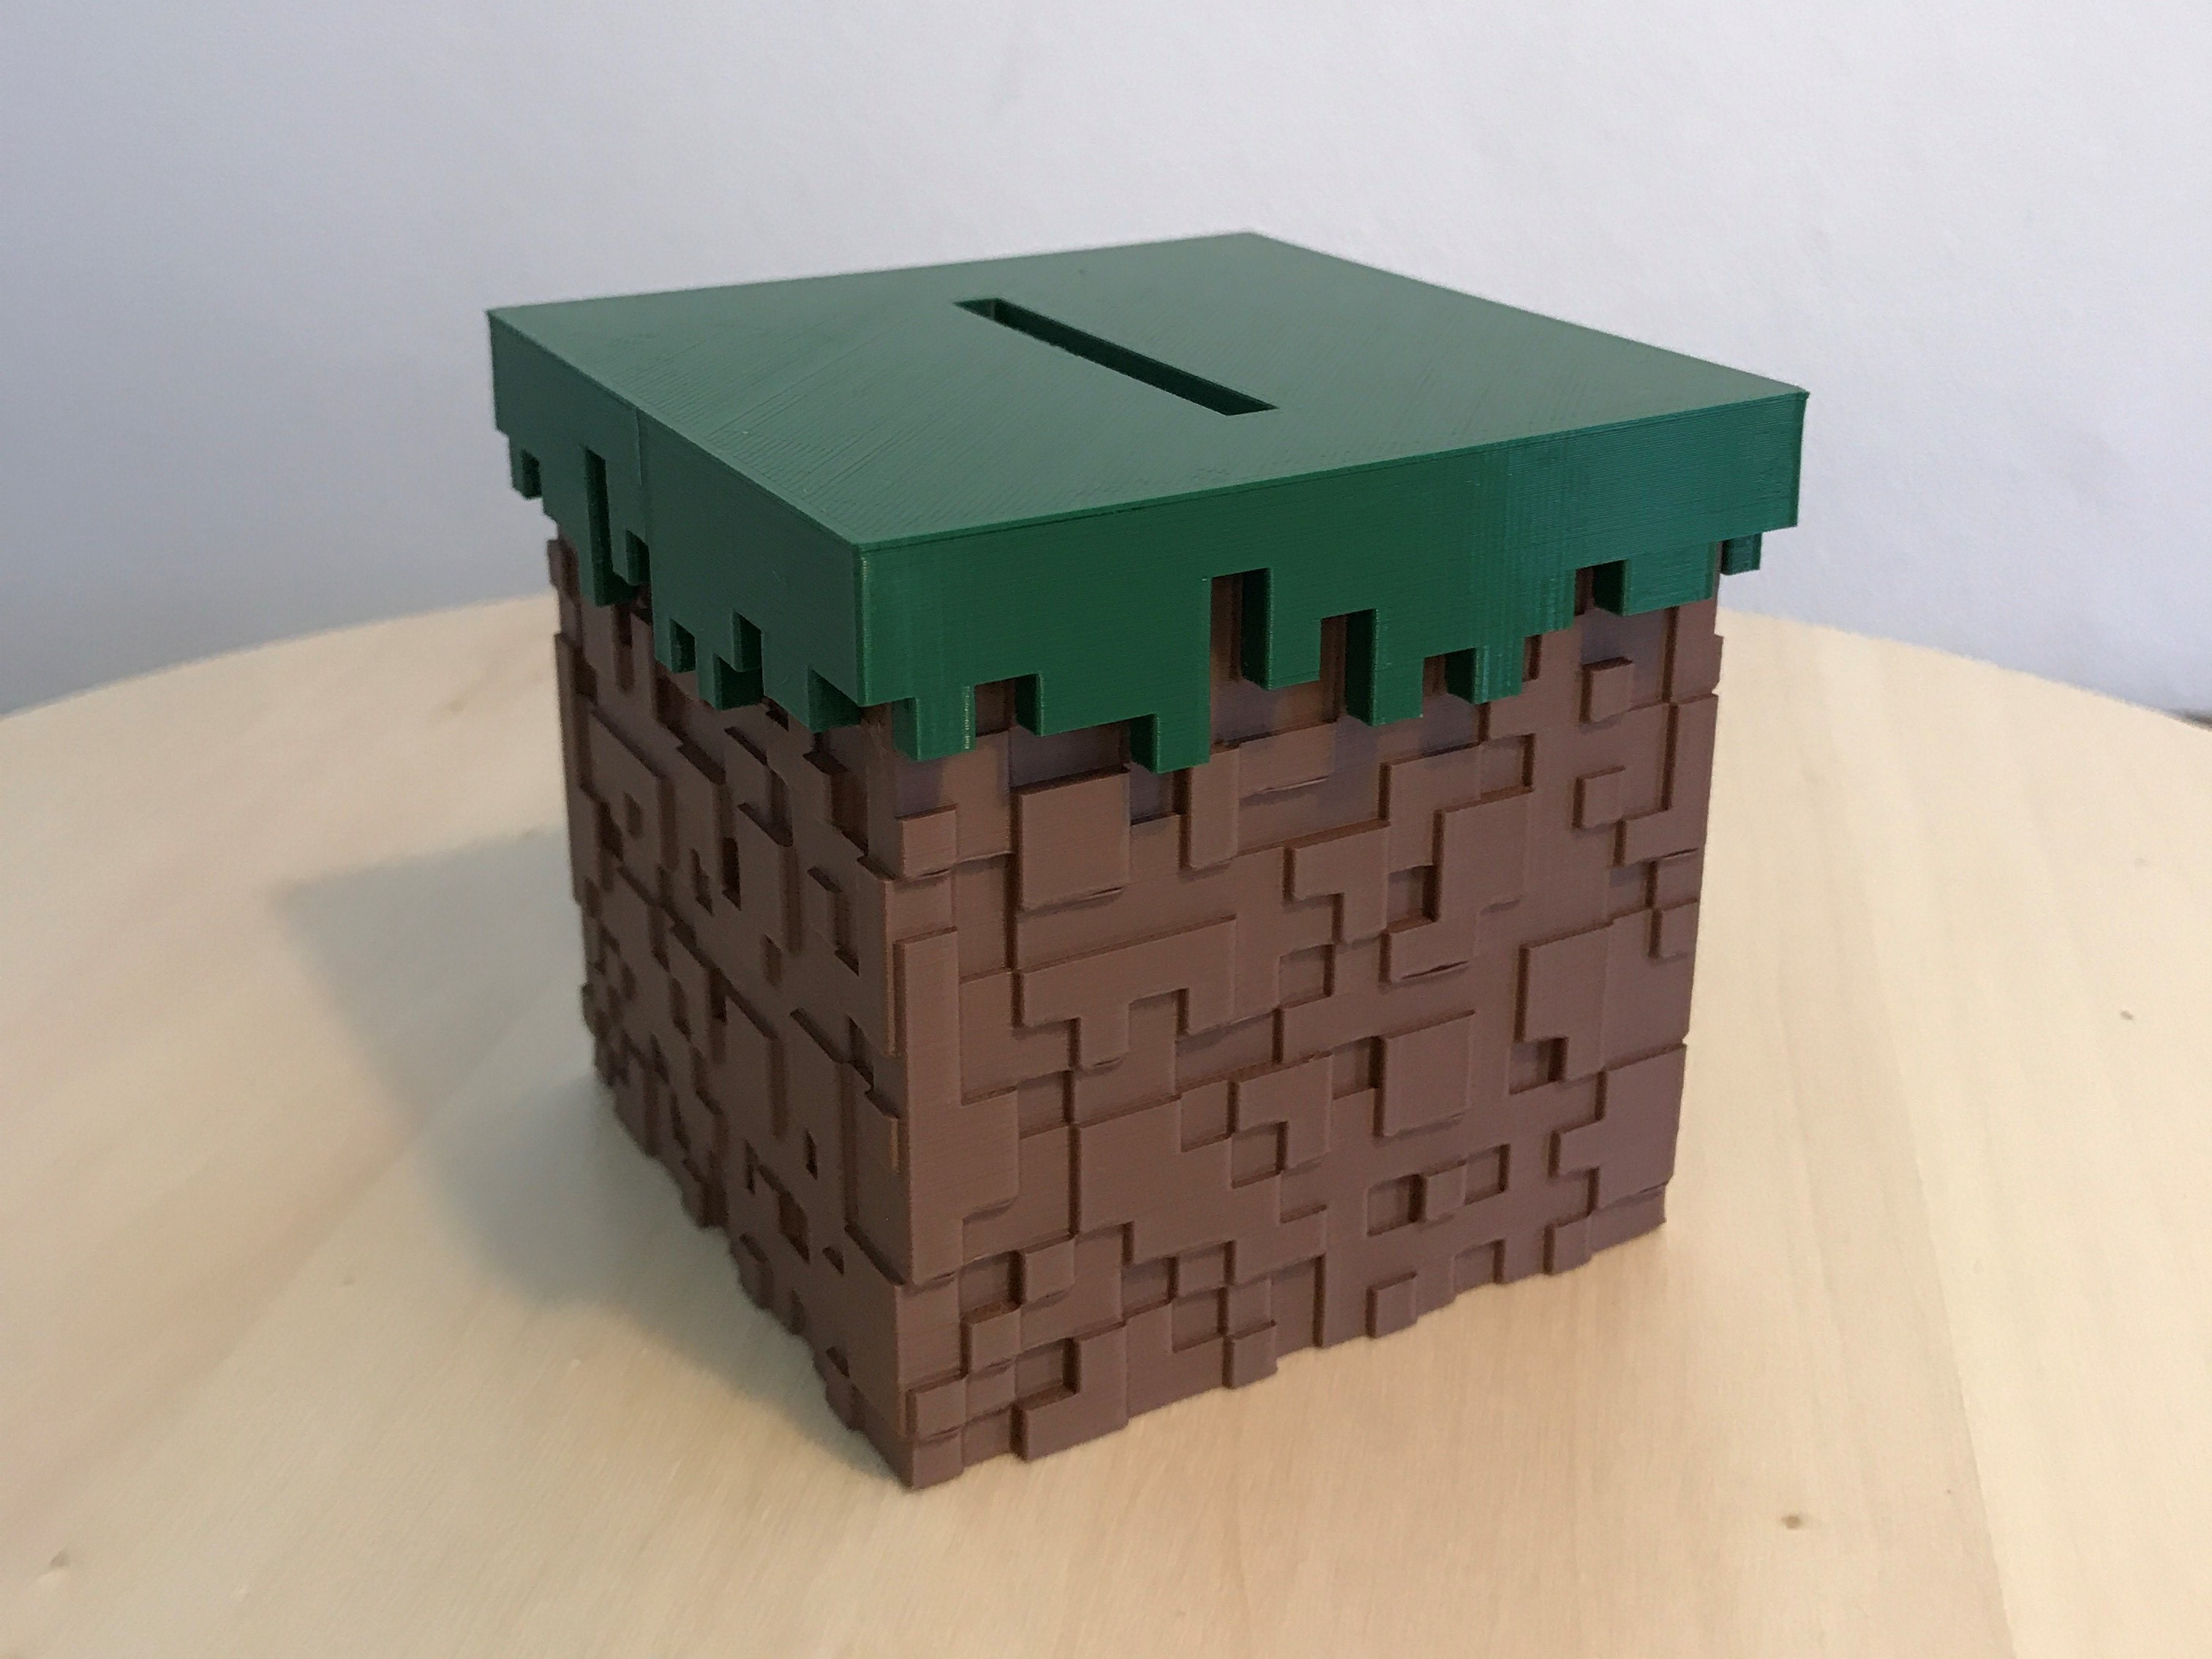 00.jpg Download free STL file Minecraft Grass Block Money Bank • 3D printing template, the3dsmith